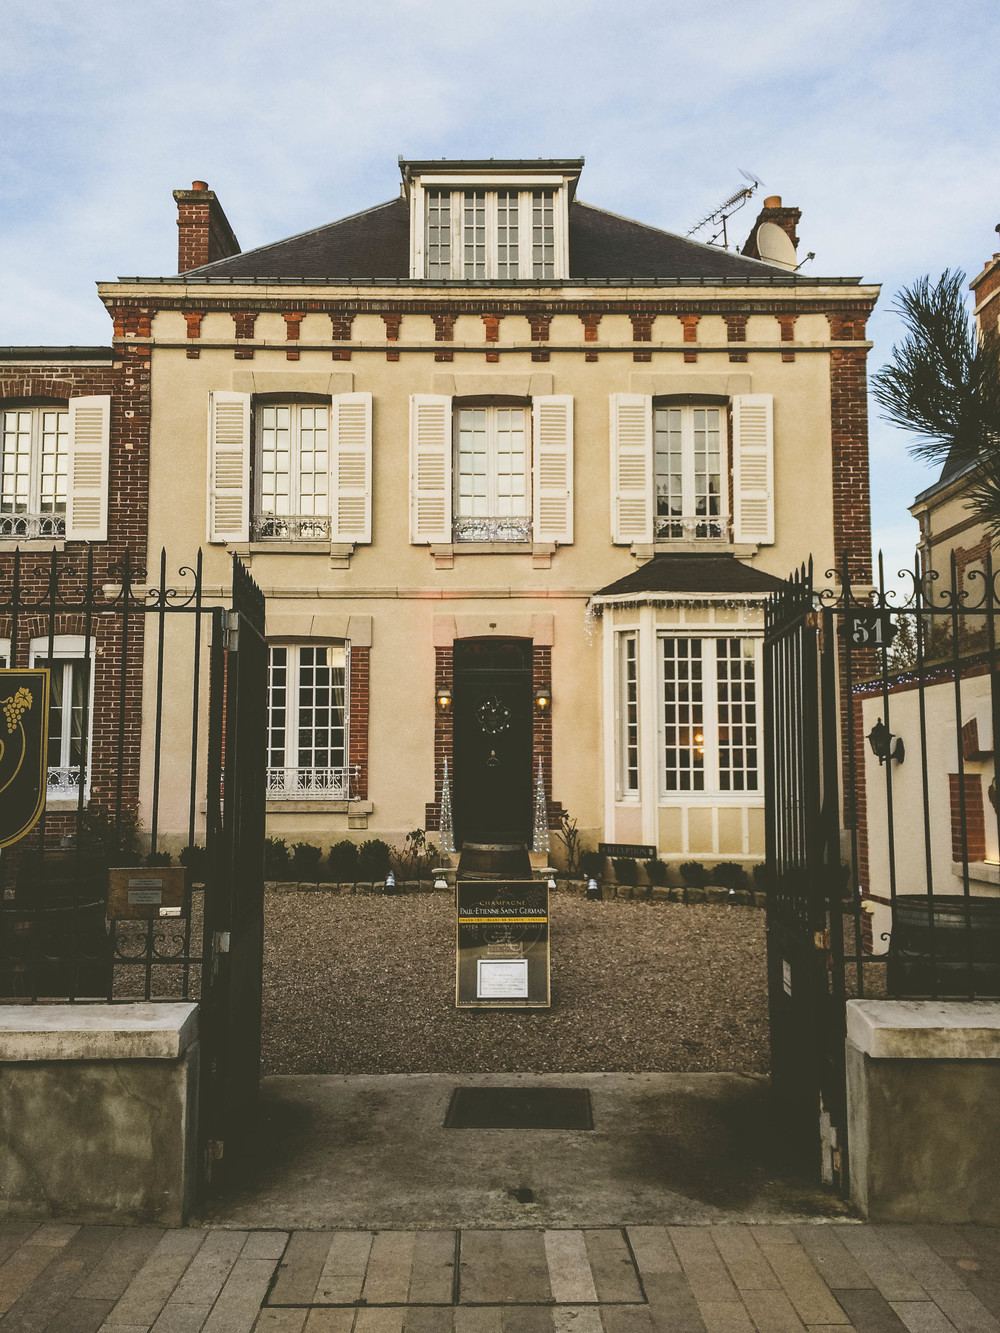 The House of Paul-Etienne Saint Germain Champagne, go inside for a tasting.